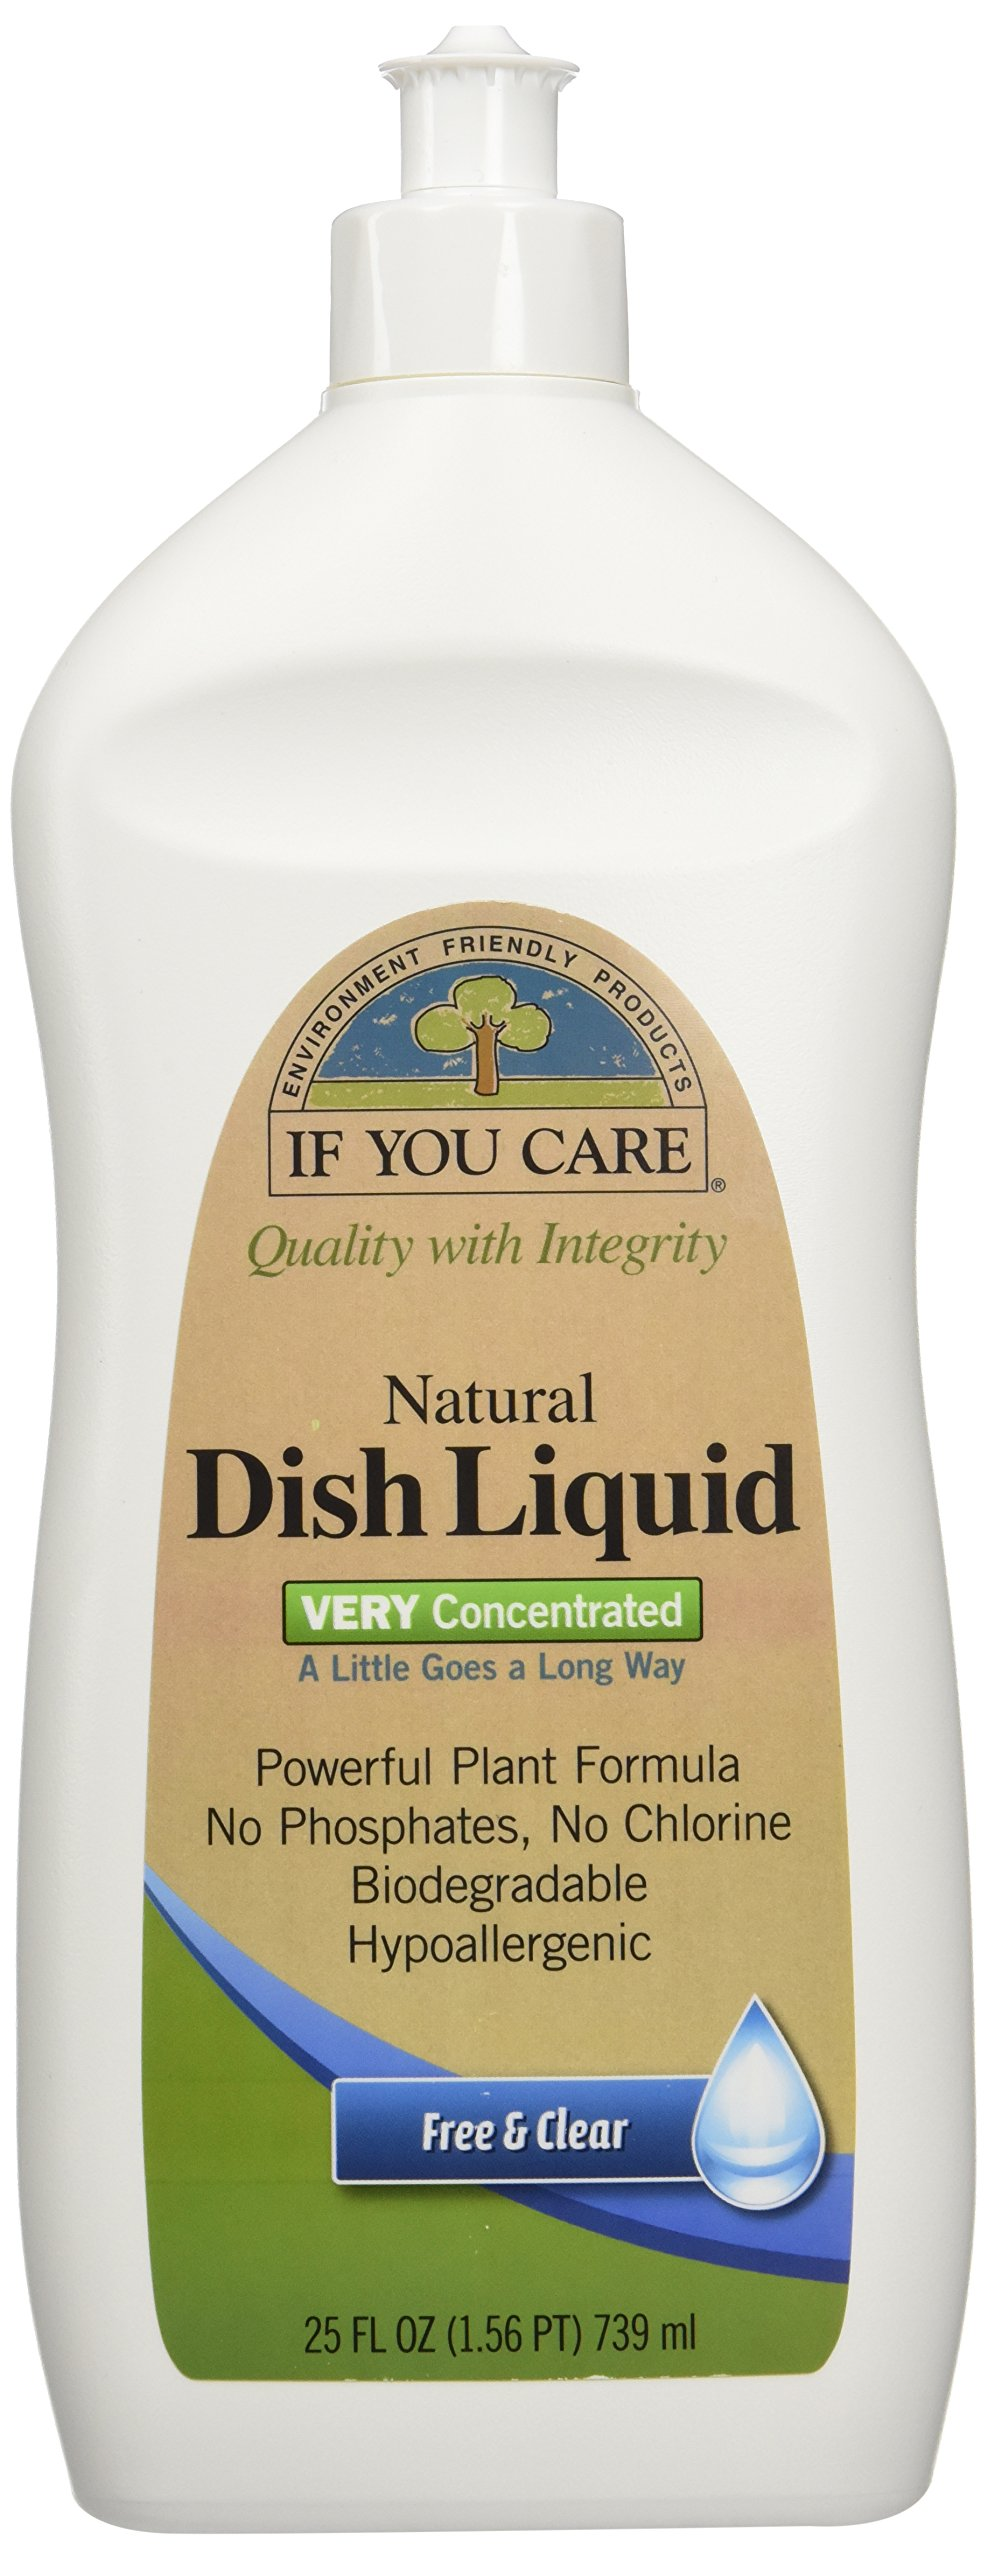 IF YOU CARE Natural Dish Liquid, Free and Clear, 25 Ounce